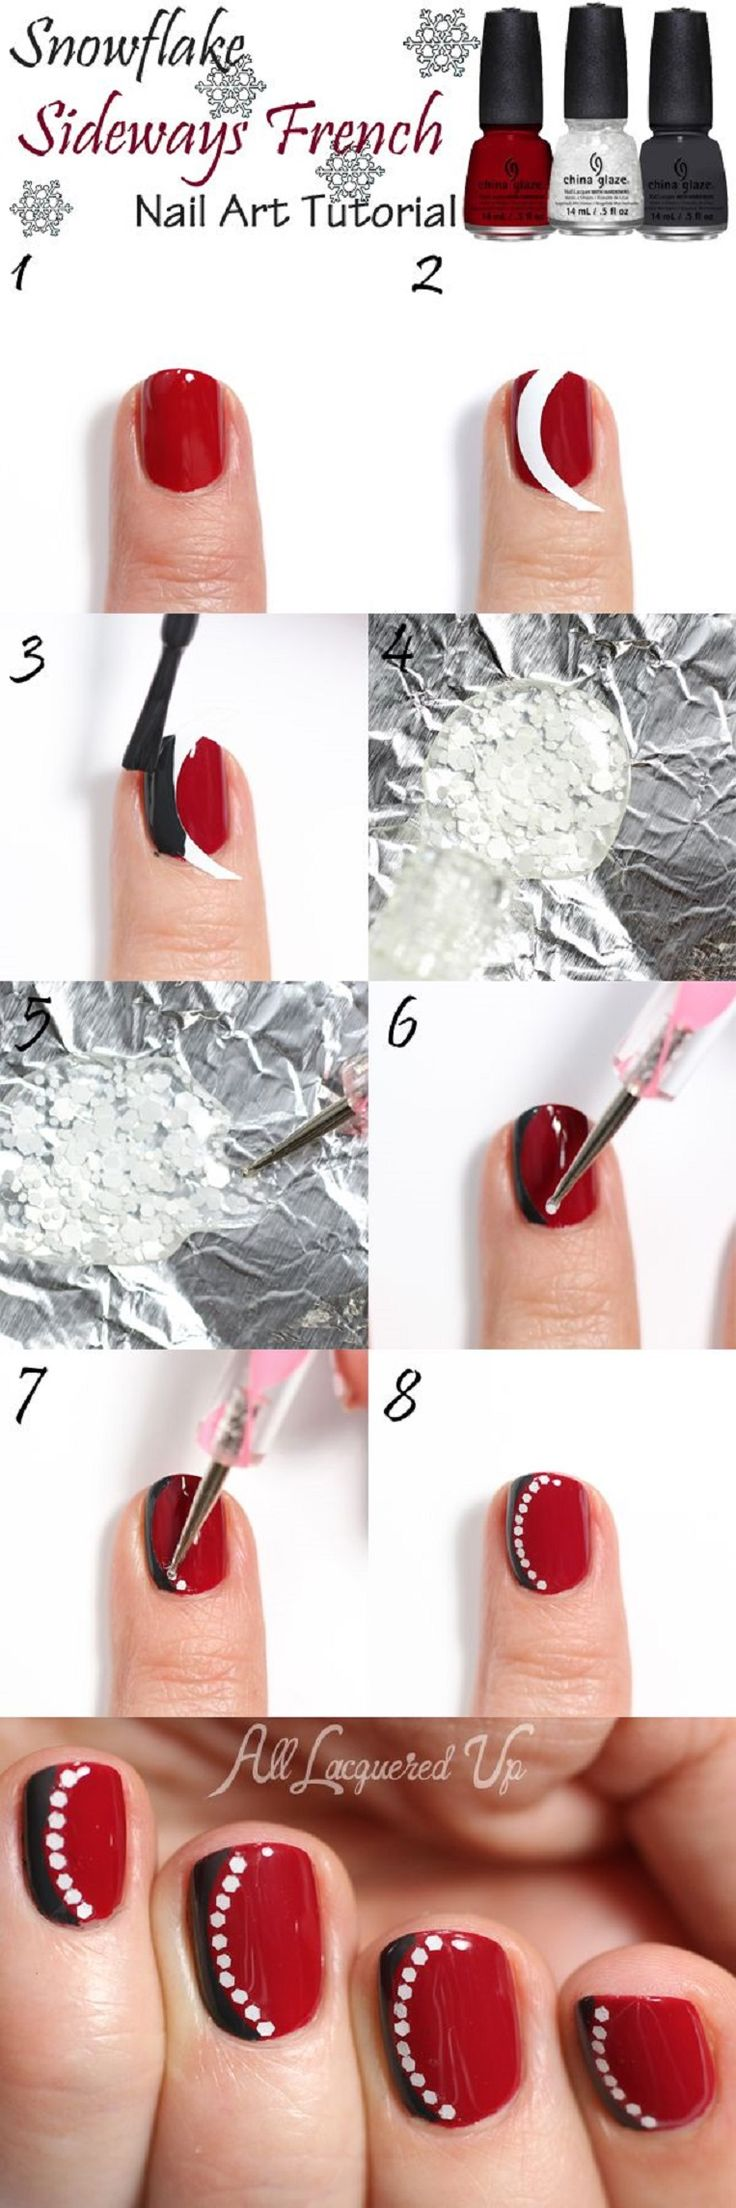 98 best Nail Art images on Pinterest | Make up, Enamels and Hairstyles